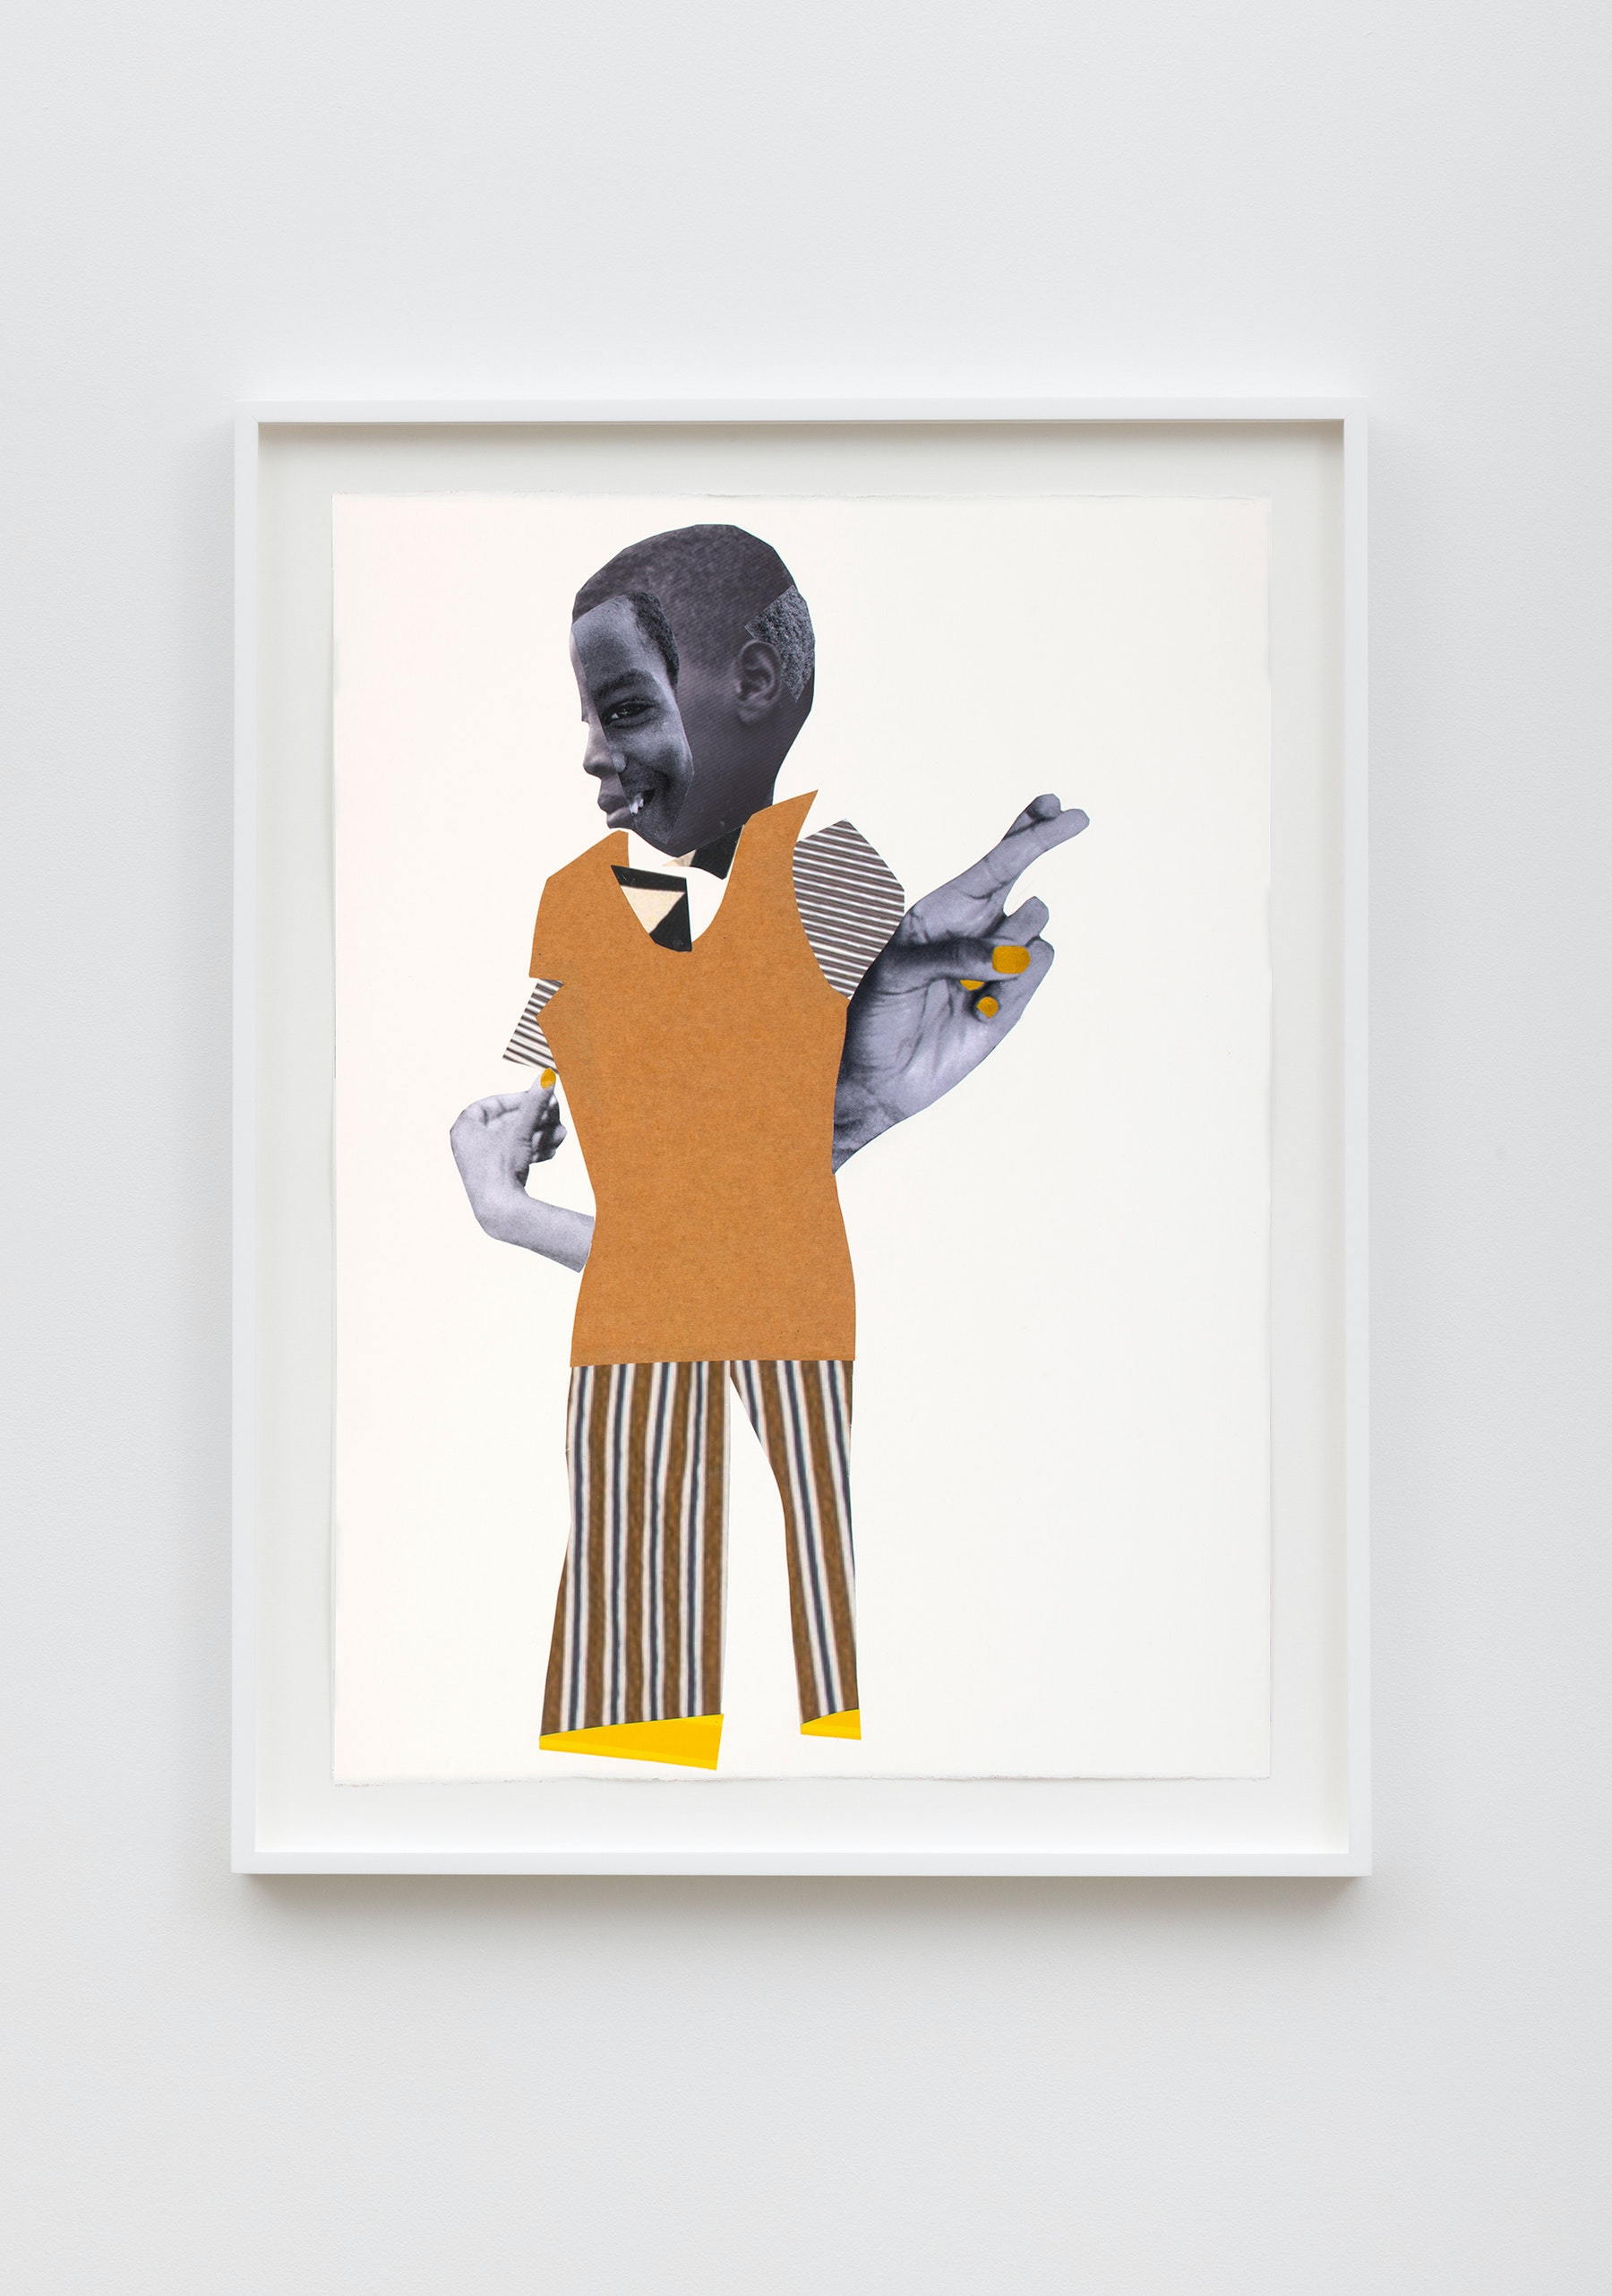 """Deborah Roberts """"The words that carry us,"""" 2021 Mixed media collage on paper 30"""" x 22"""" [HxW] (76.2 x 55.88 cm) Inventory #ROB461 Courtesy of the artist and Vielmetter Los Angeles"""